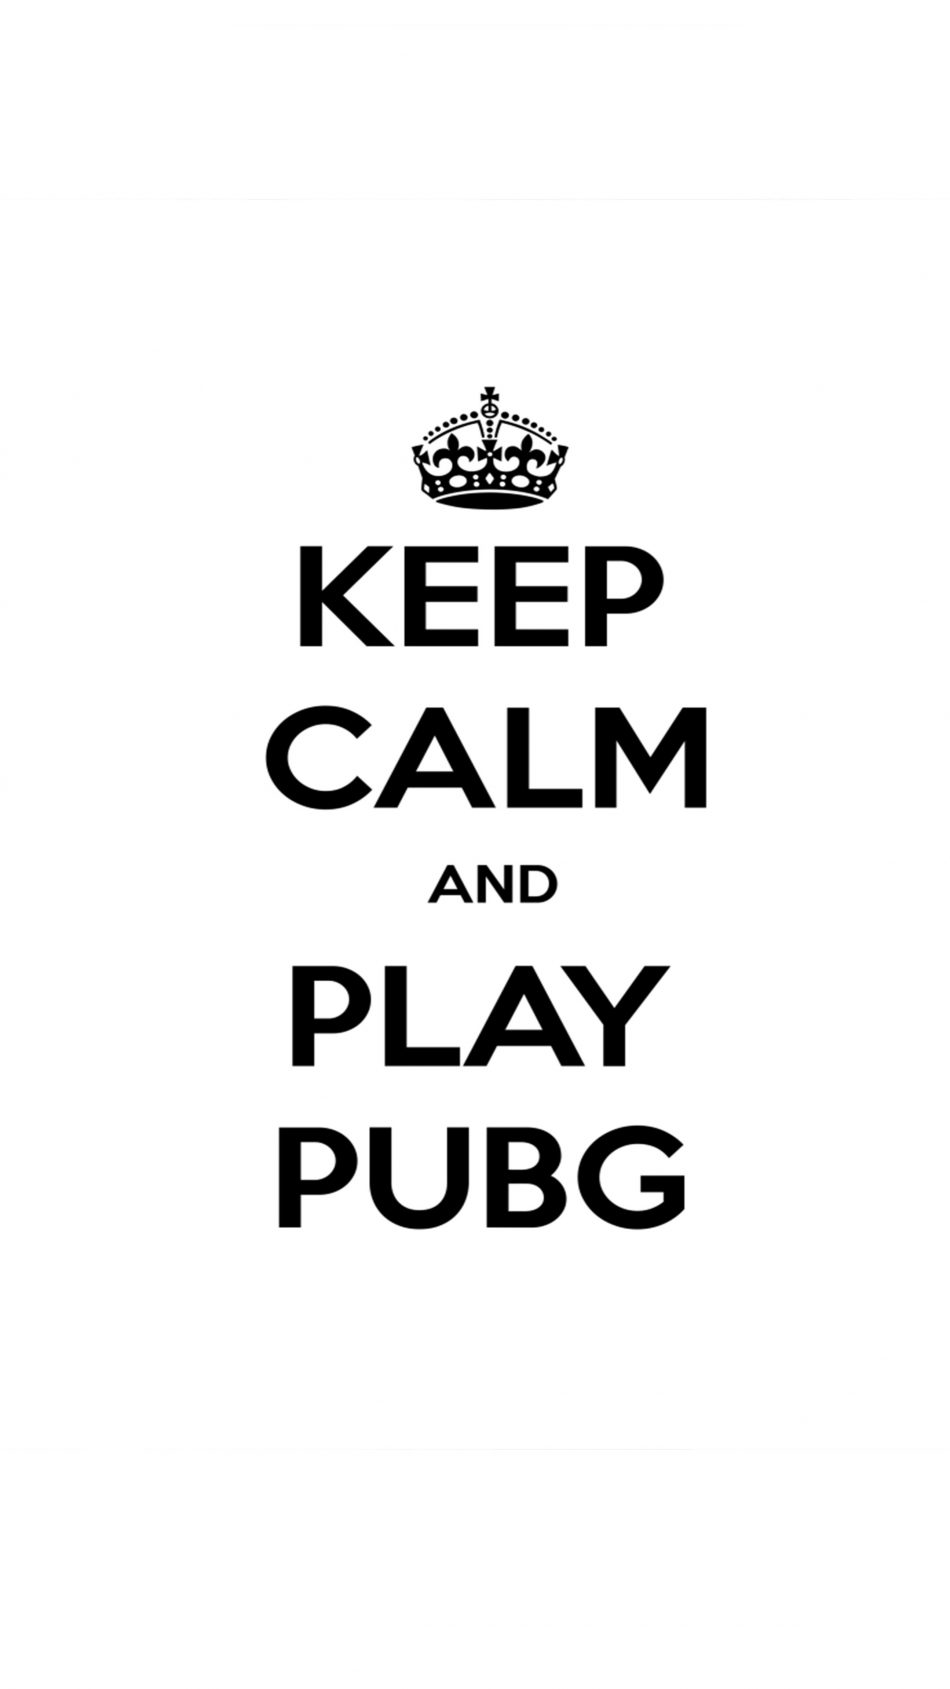 Download Keep Calm And Play PUBG Free Pure 4K Ultra HD